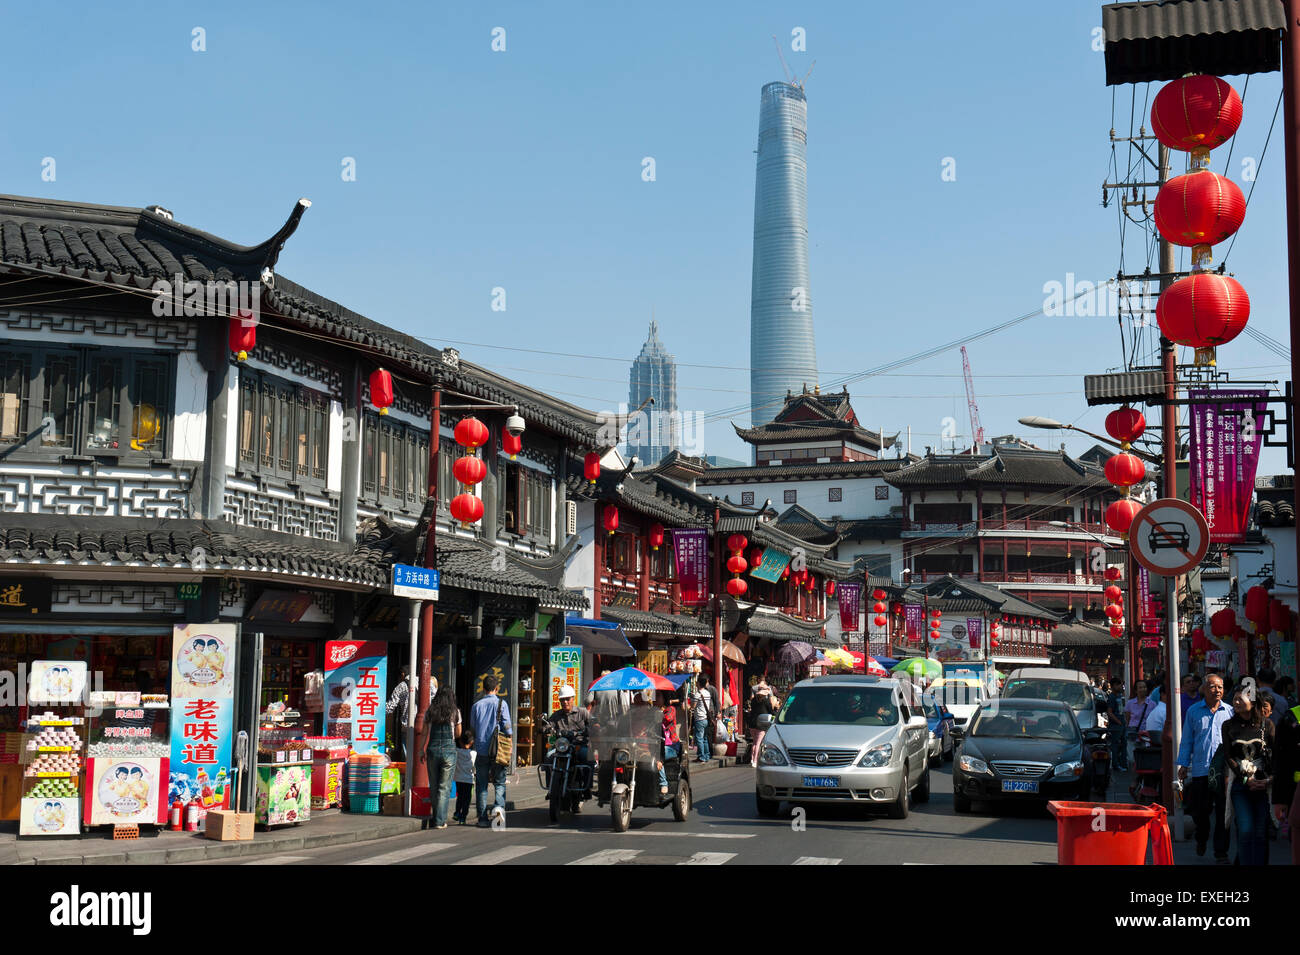 Shopping street, red lanterns, houses in the old style, old city bazaar, Nanshi, Jin Mao Tower and Shanghai Tower - Stock Image